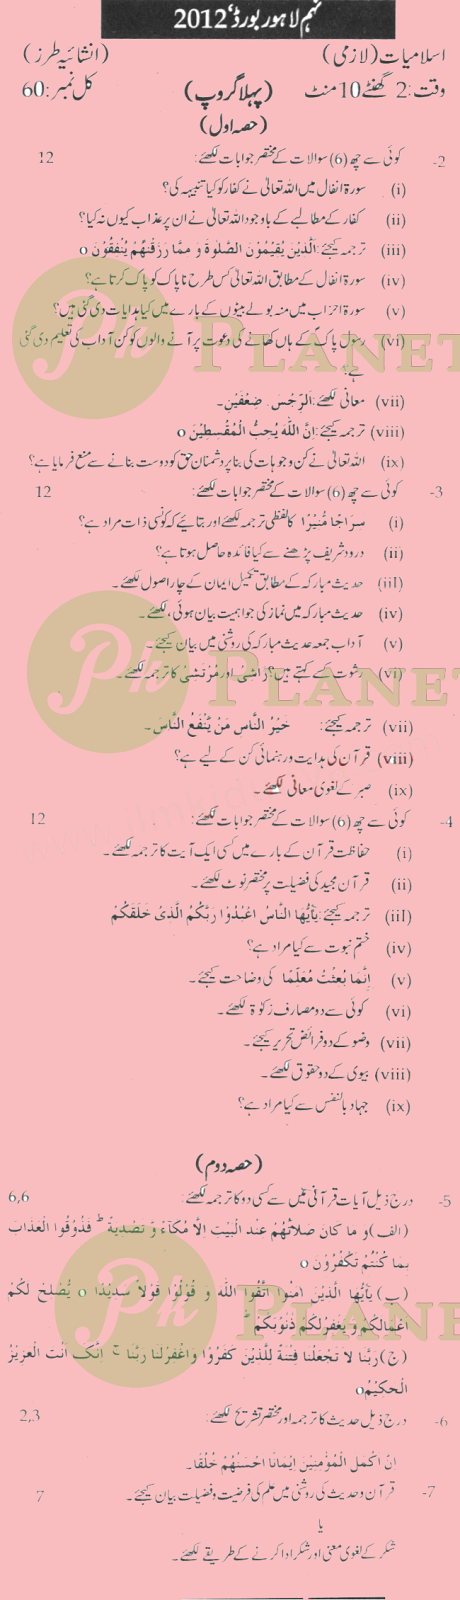 Past Papers of 9th Class Lahore Board 2012 Islamiat